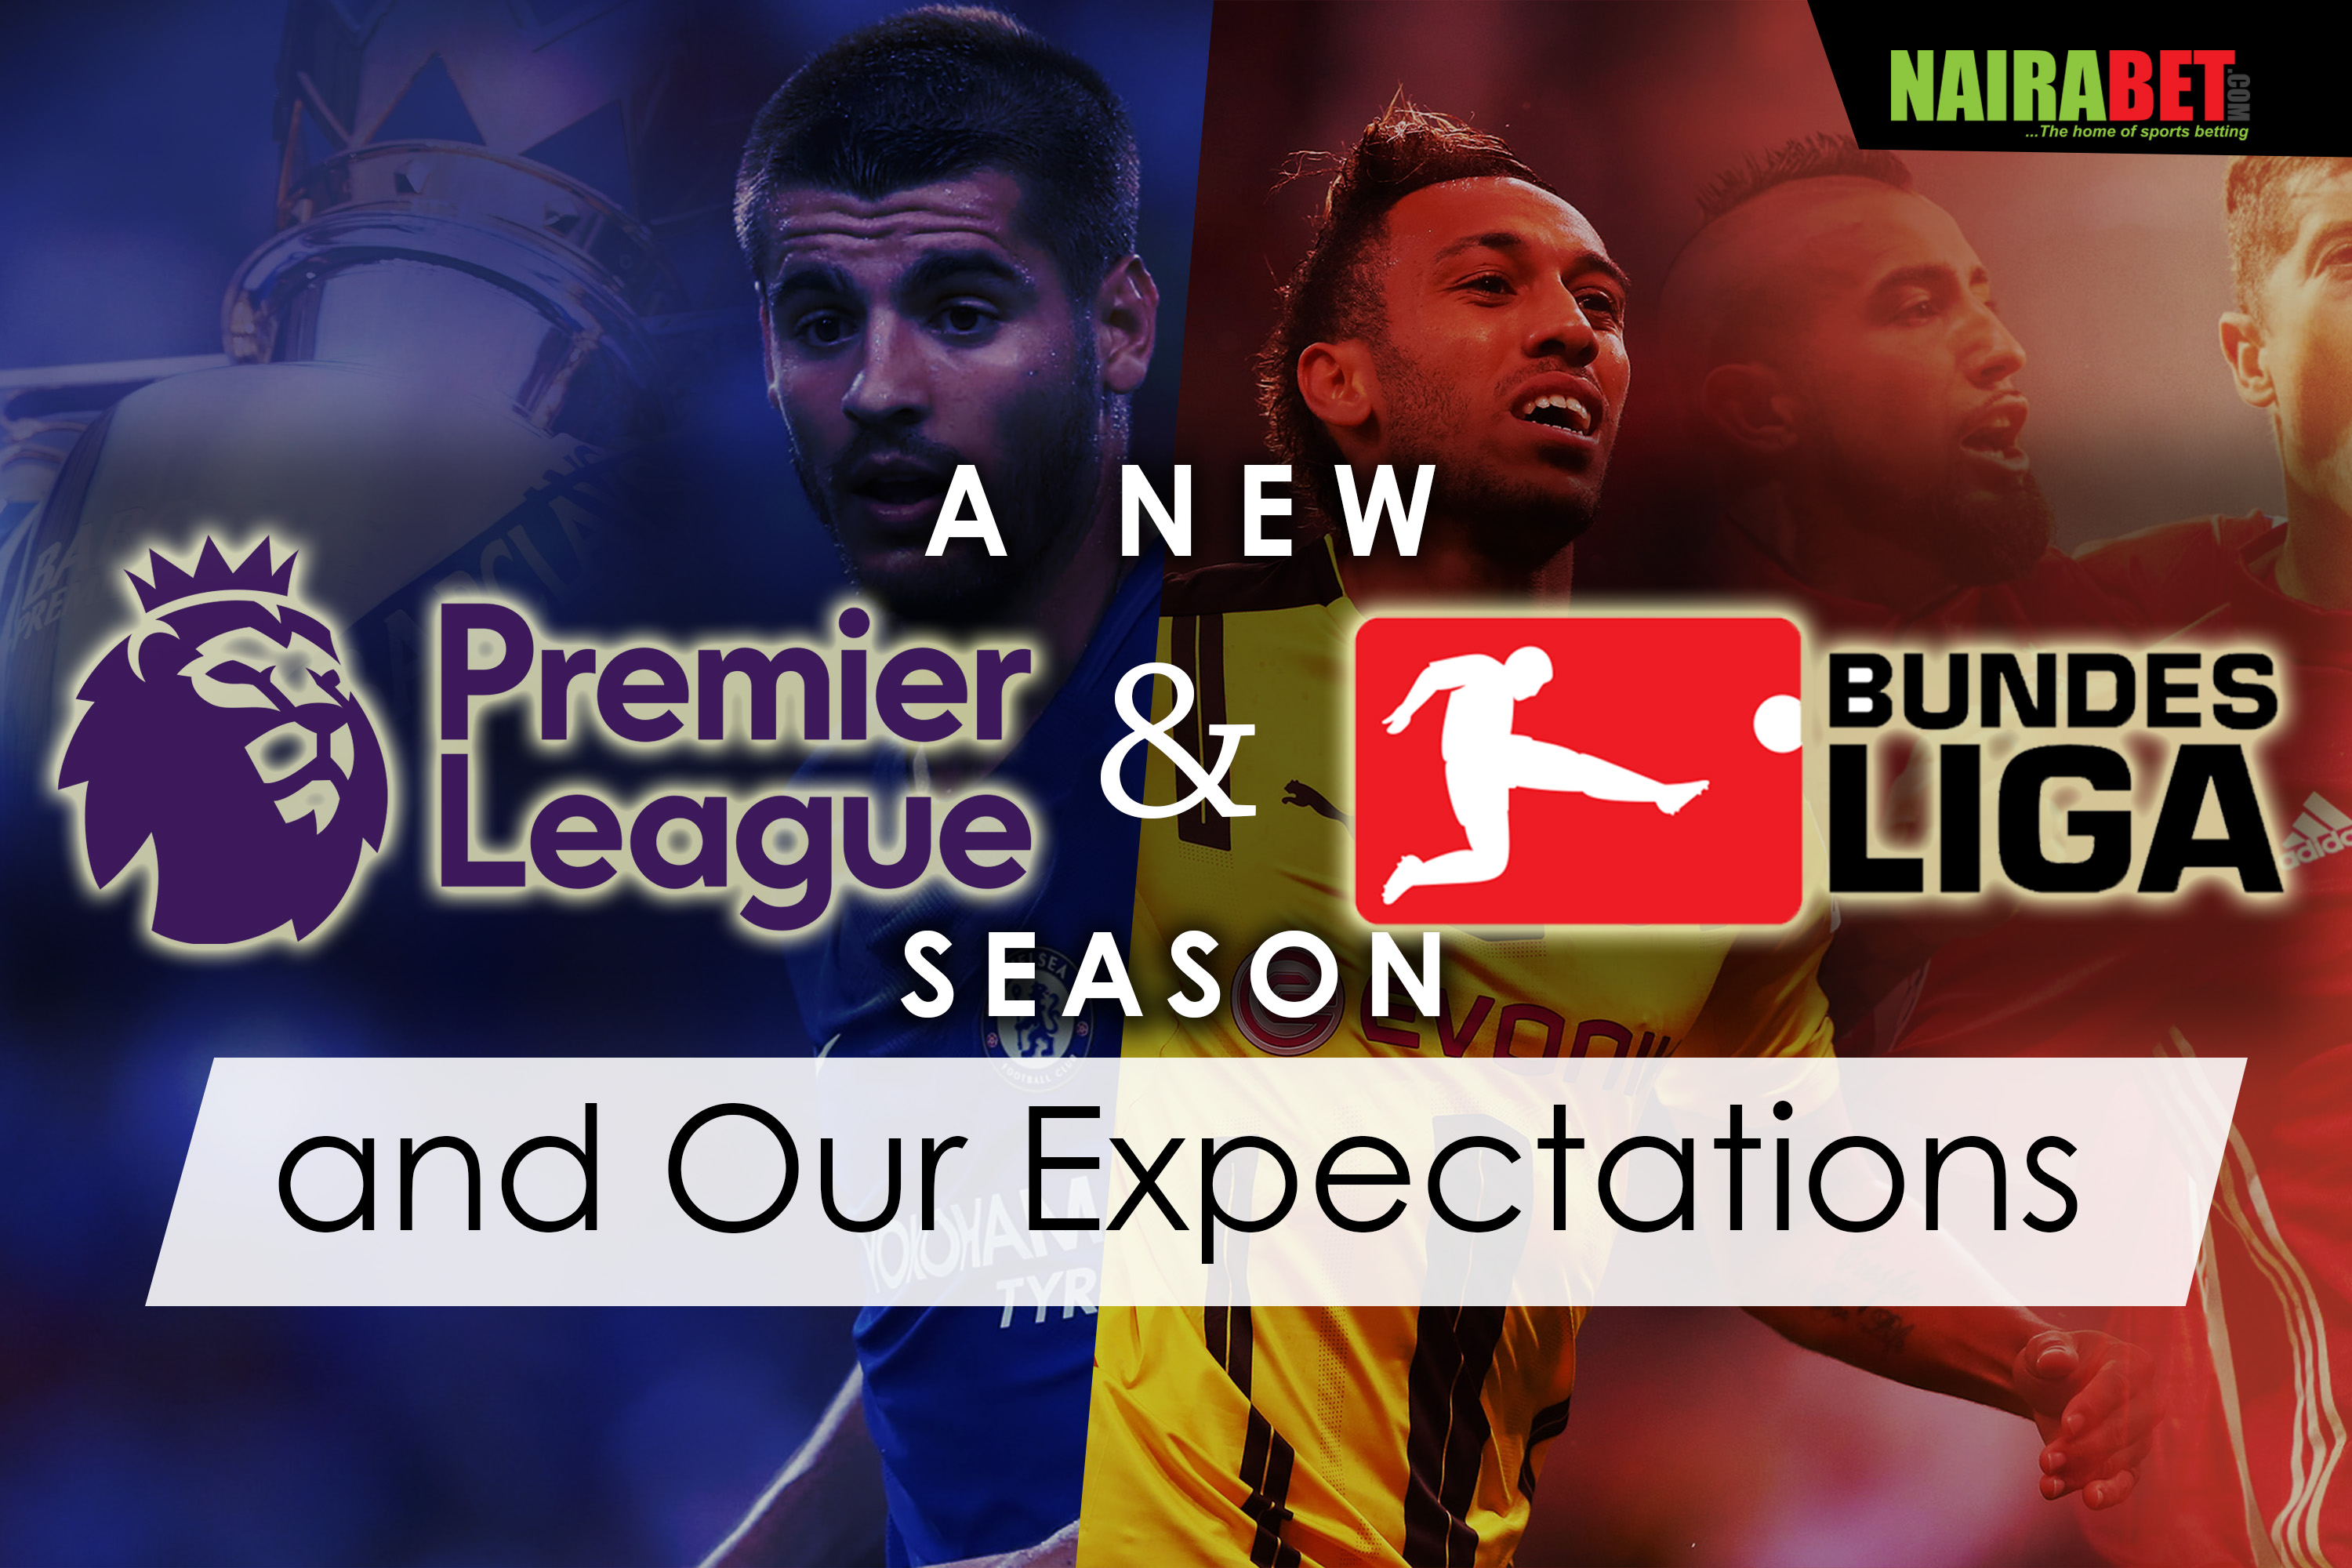 new premier league and bundesliga season